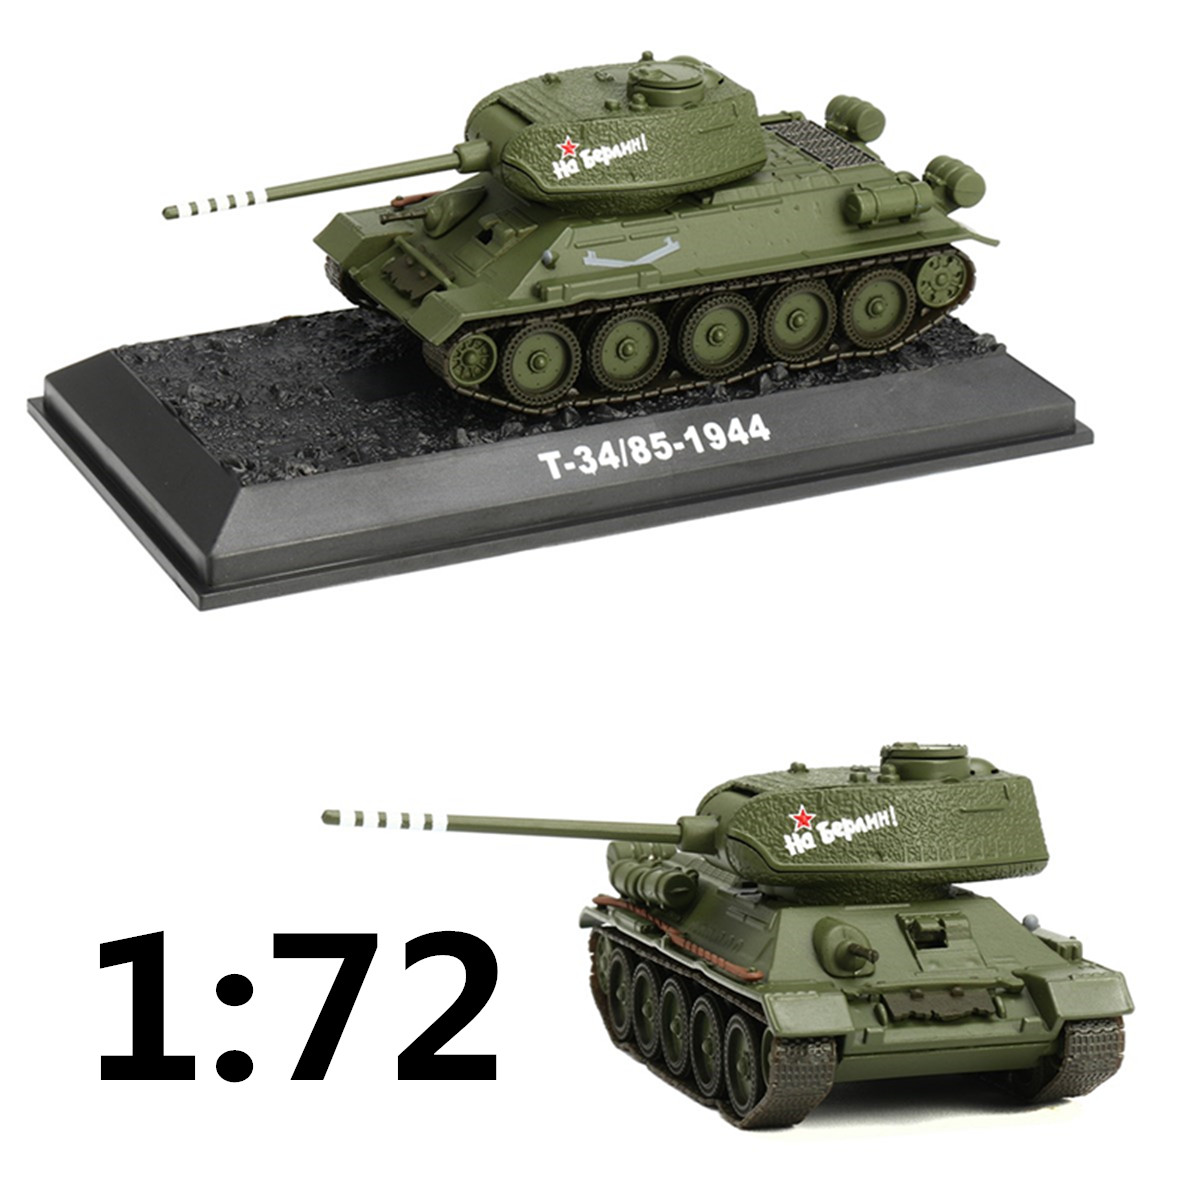 WWII Russian <font><b>T34</b></font>/85-1944 1/72 Scale <font><b>Tank</b></font> <font><b>Model</b></font> Plastic Army Green Mini <font><b>Tank</b></font> Children Toys Gift For Kid Boy image